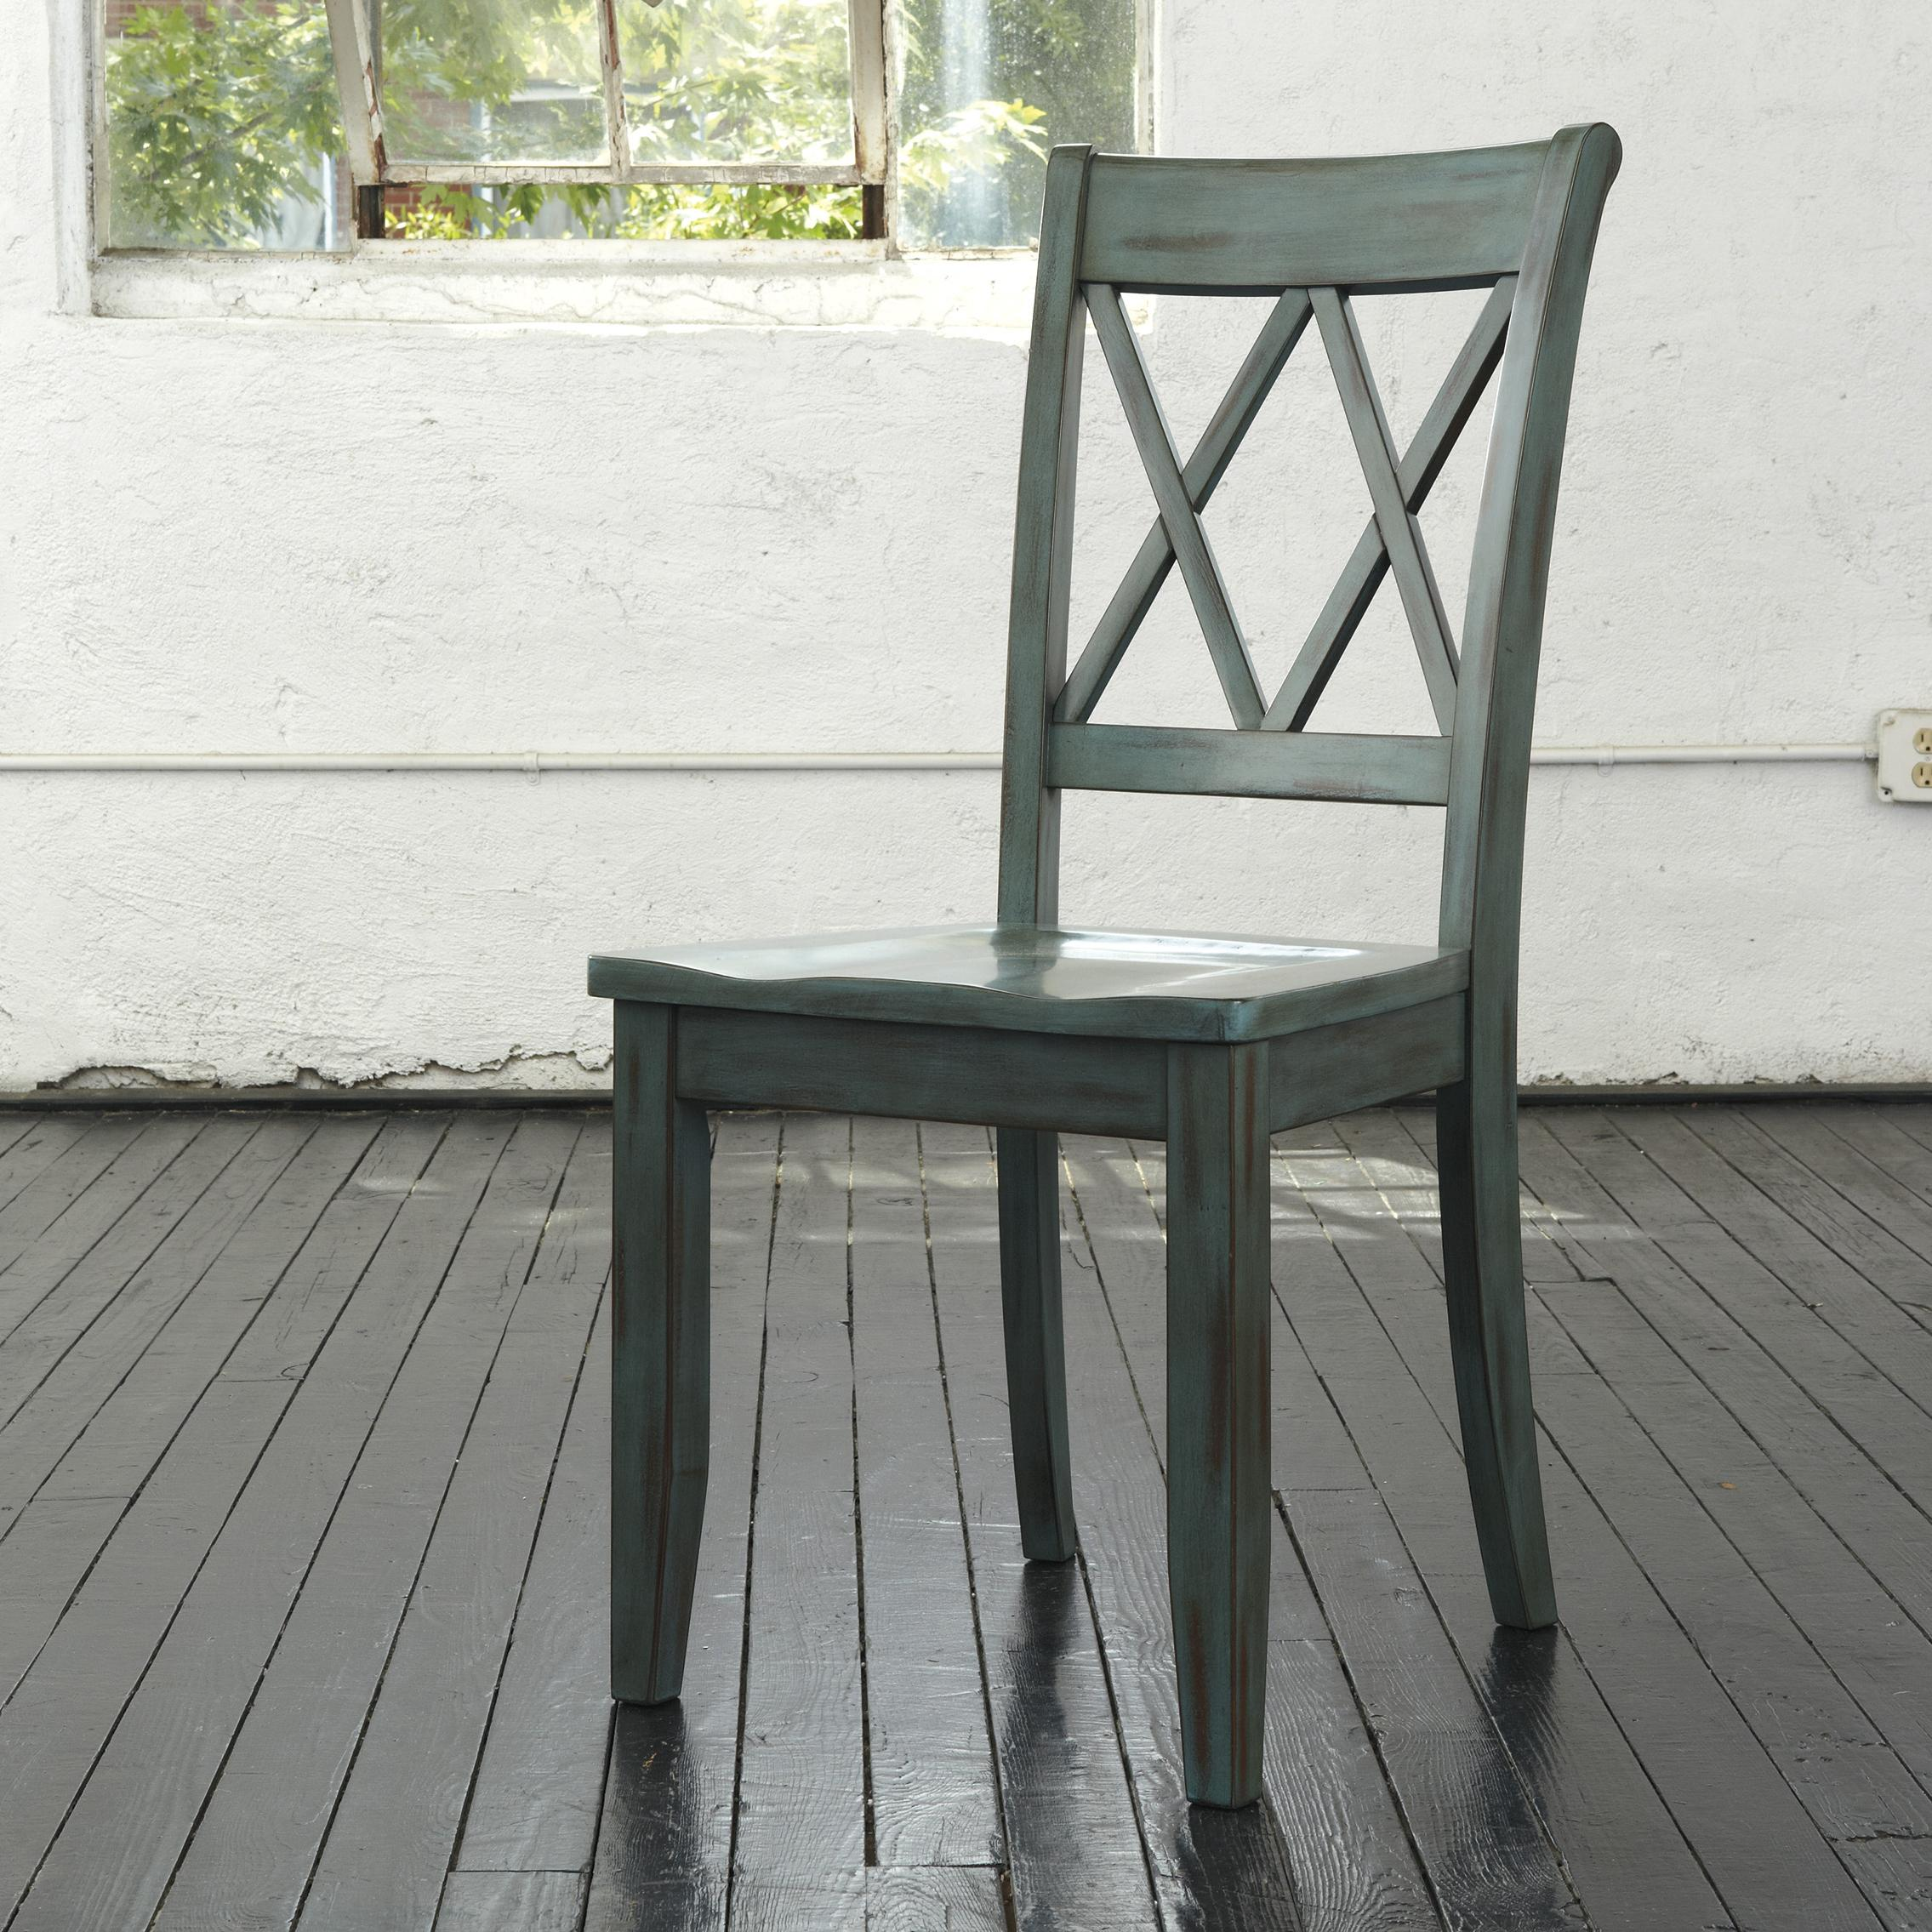 Signature Design by Ashley Mestler Antique Blue/Green Dining Room Side Chair - Item Number: D540-101